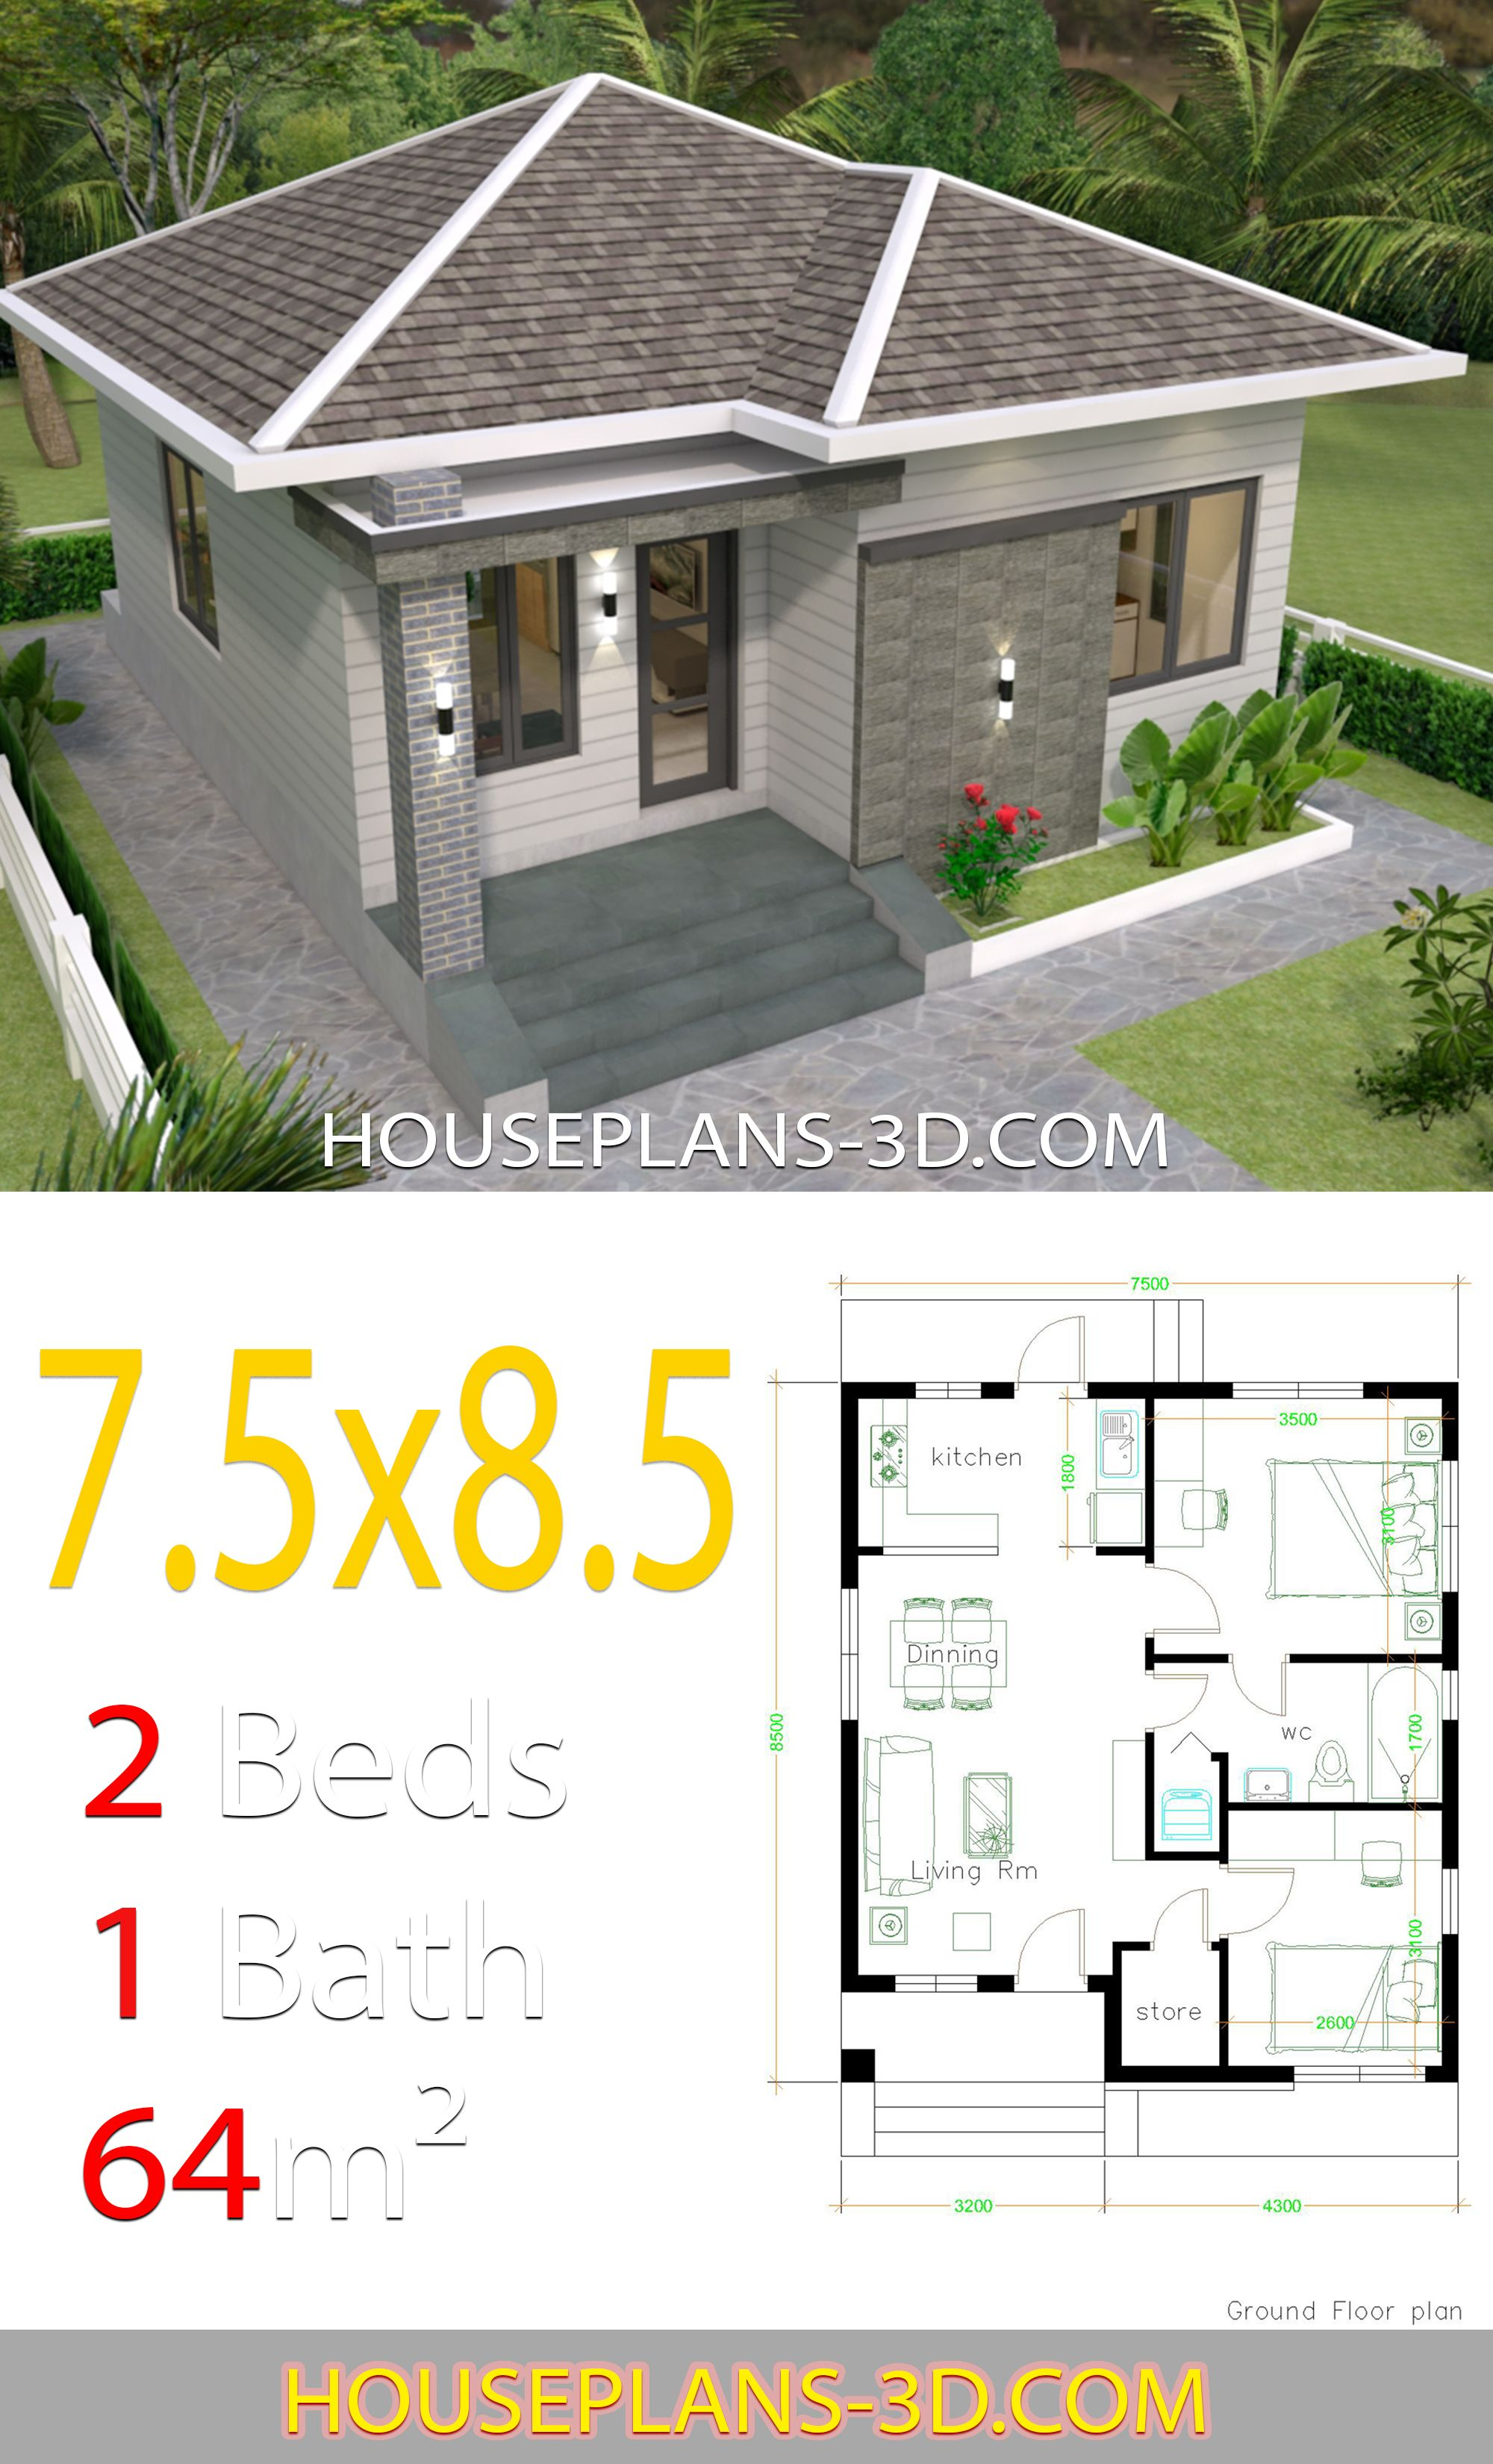 House Design 7 5x8 5 With 2 Bedrooms House Plans 3d In 2020 My House Plans Bedroom House Plans House Plans